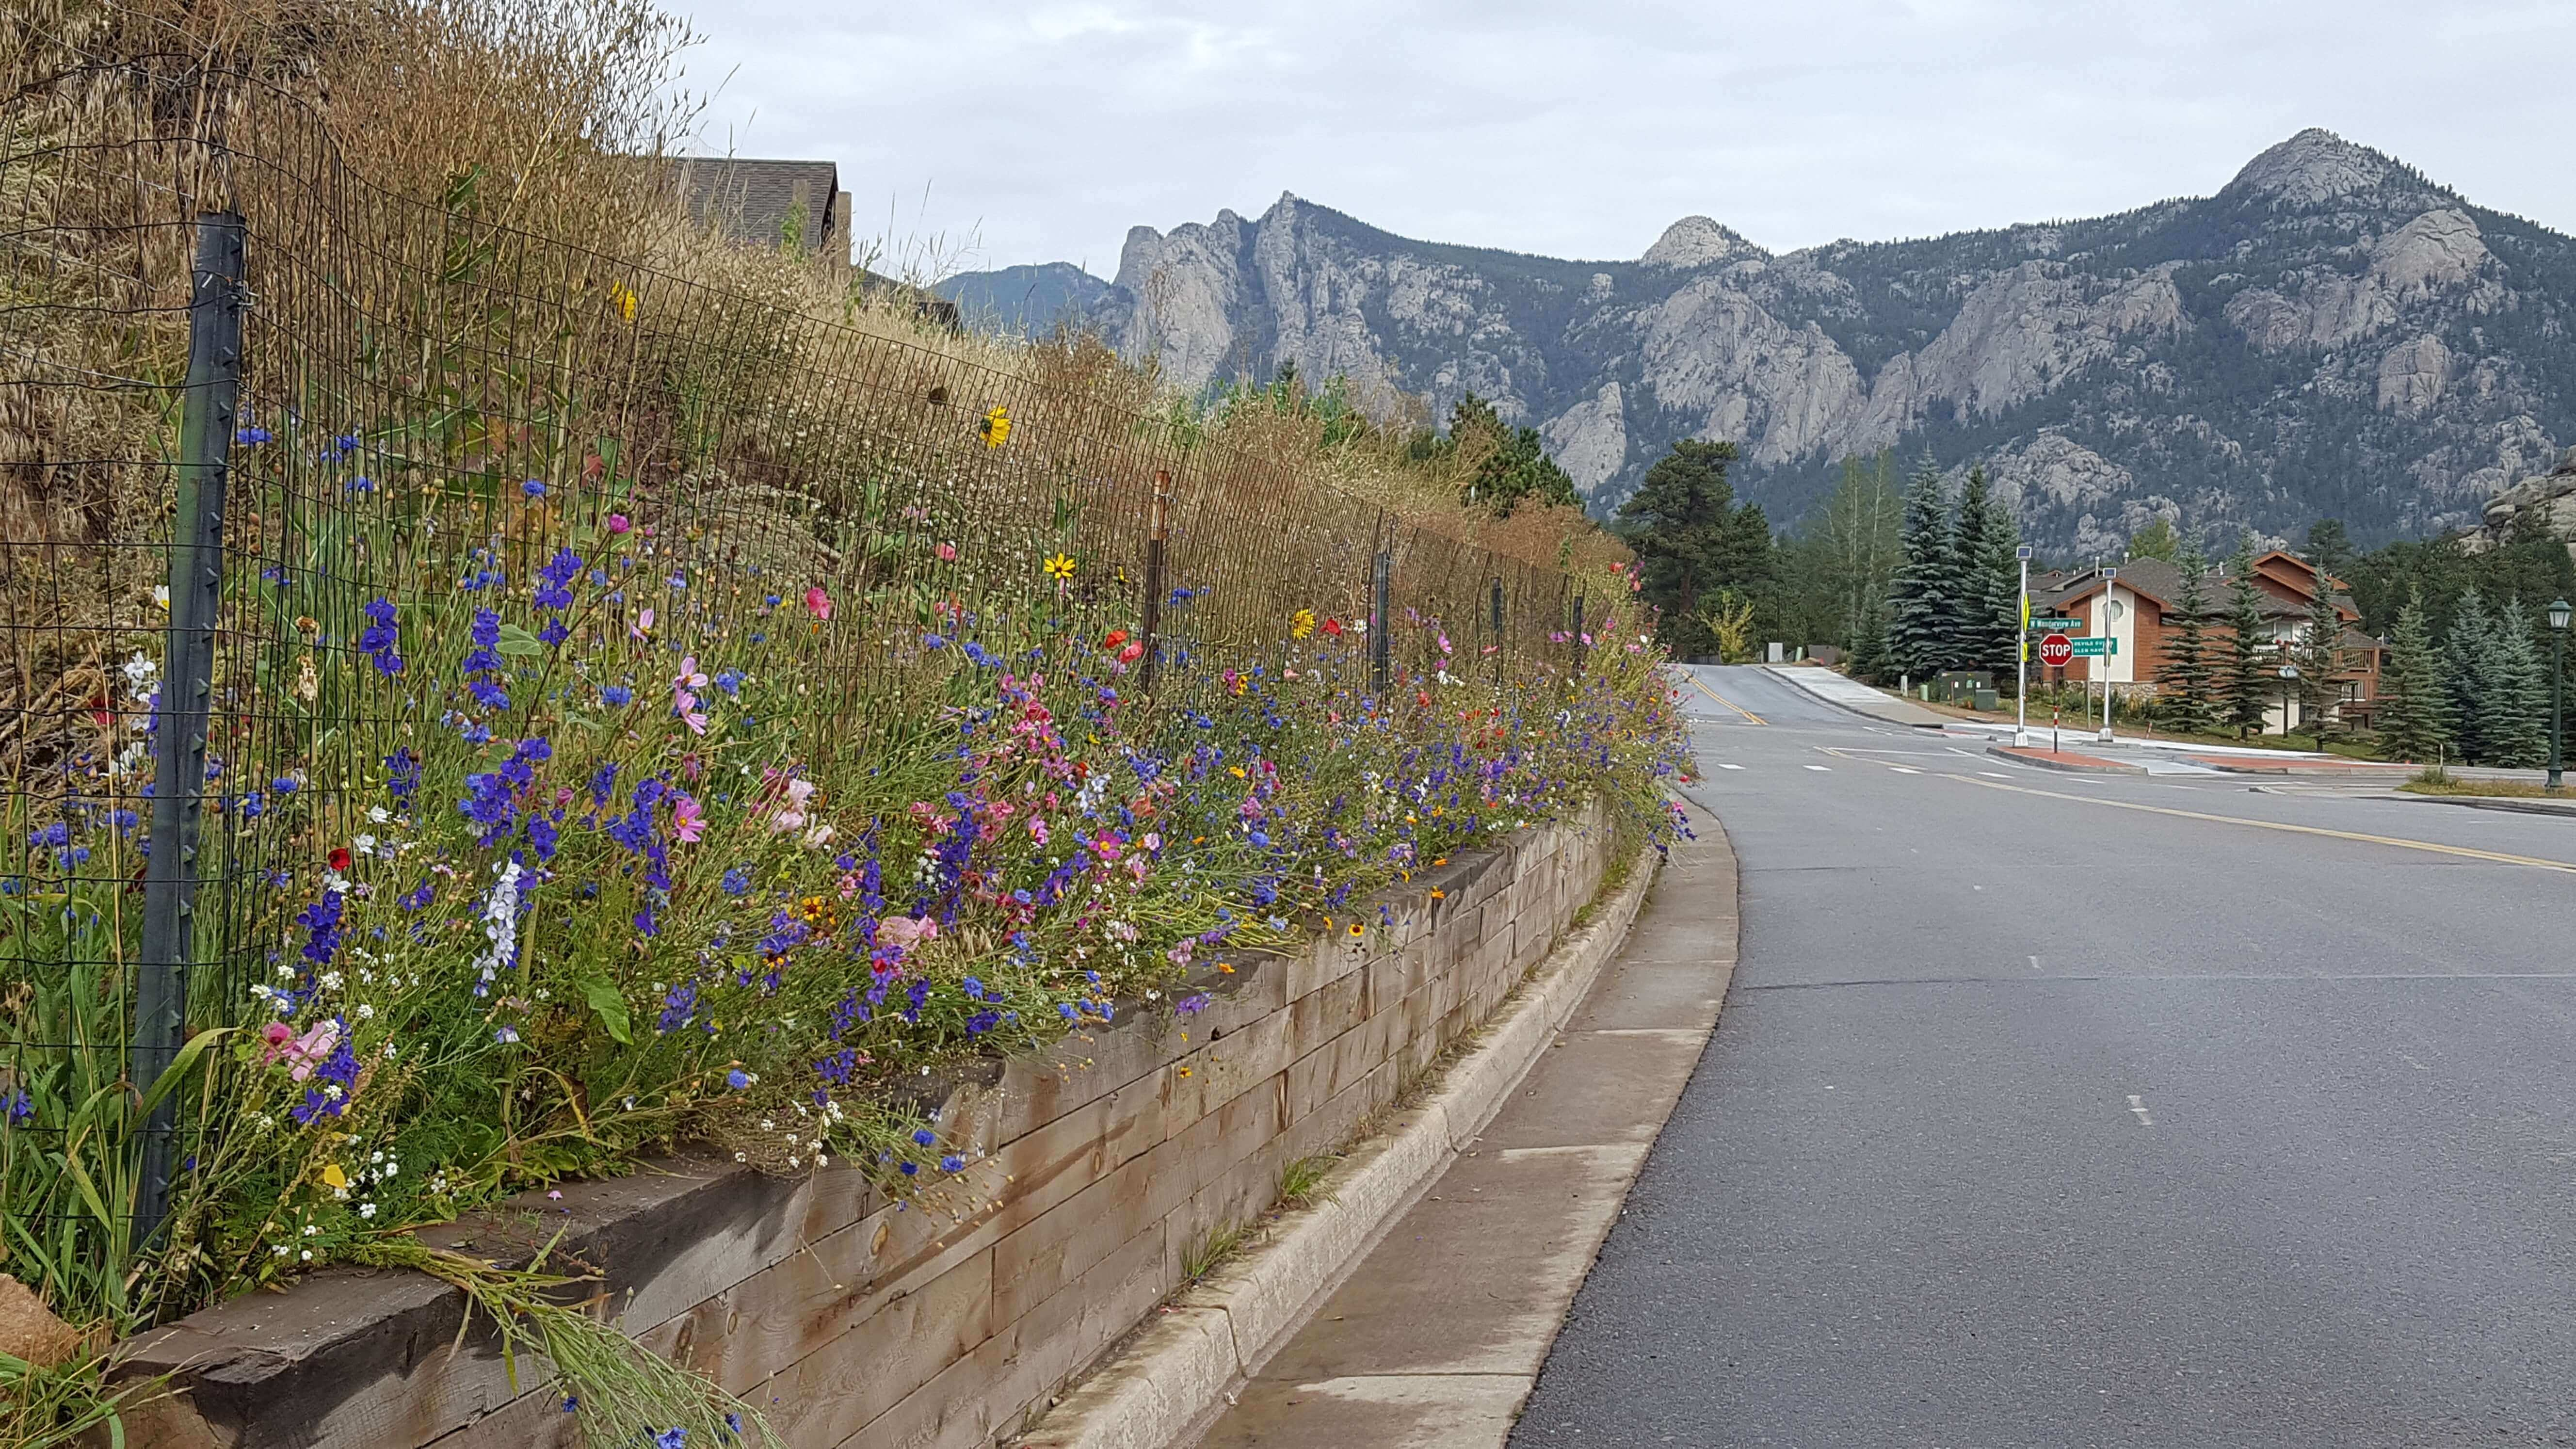 Wildflowers and Lumpy Ridge, Estes Park